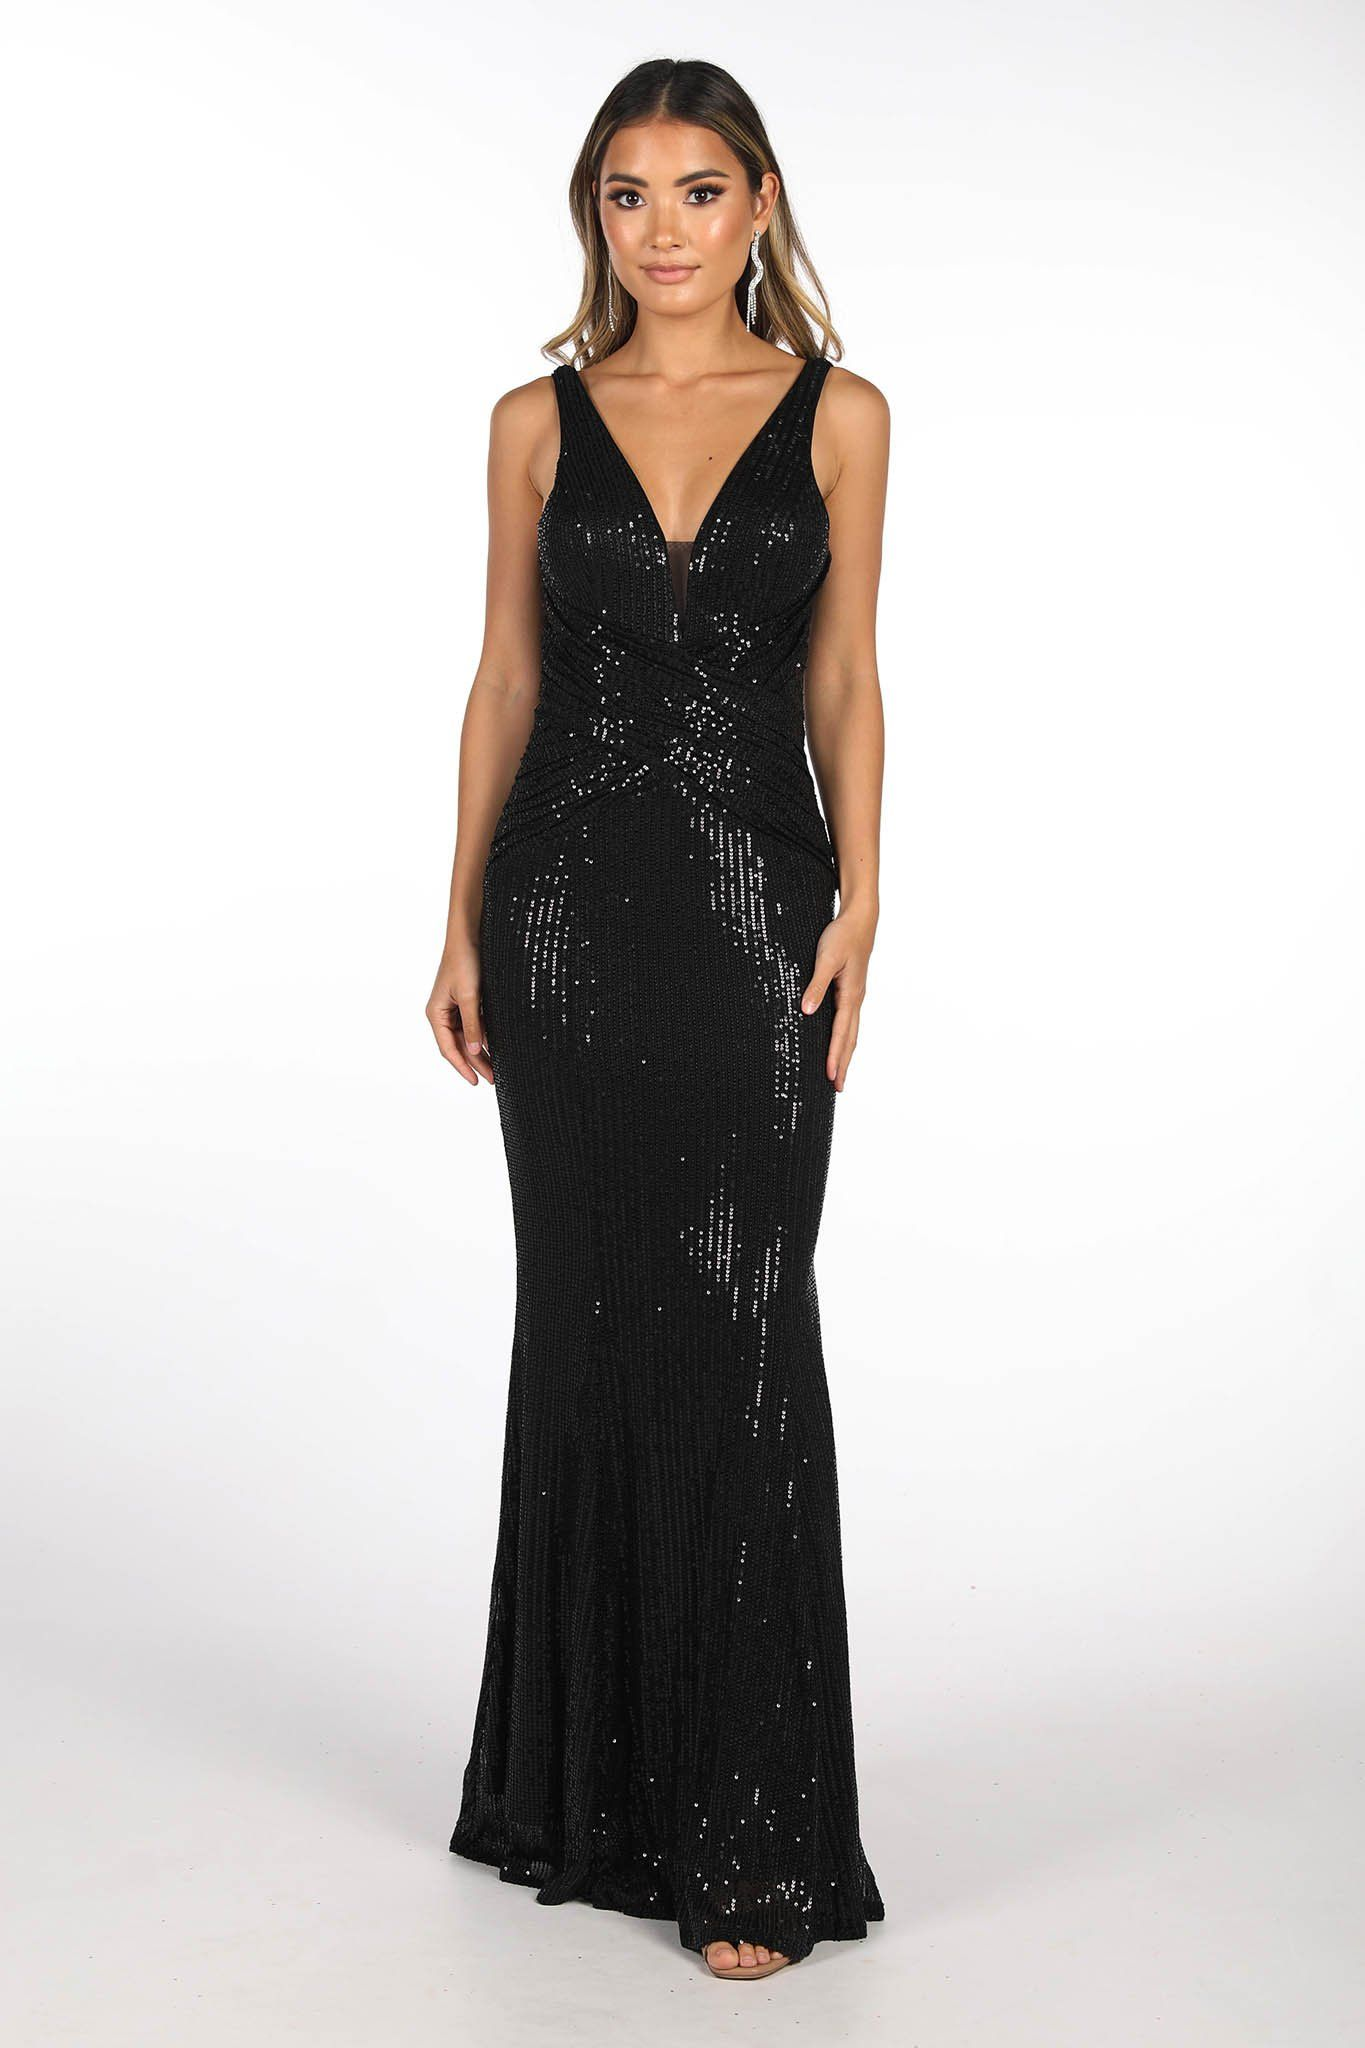 Black Full Length Sequin Evening Gown featuring V Neckline with mesh insert at bust, Gathering Detail at the centre front and Open V Back